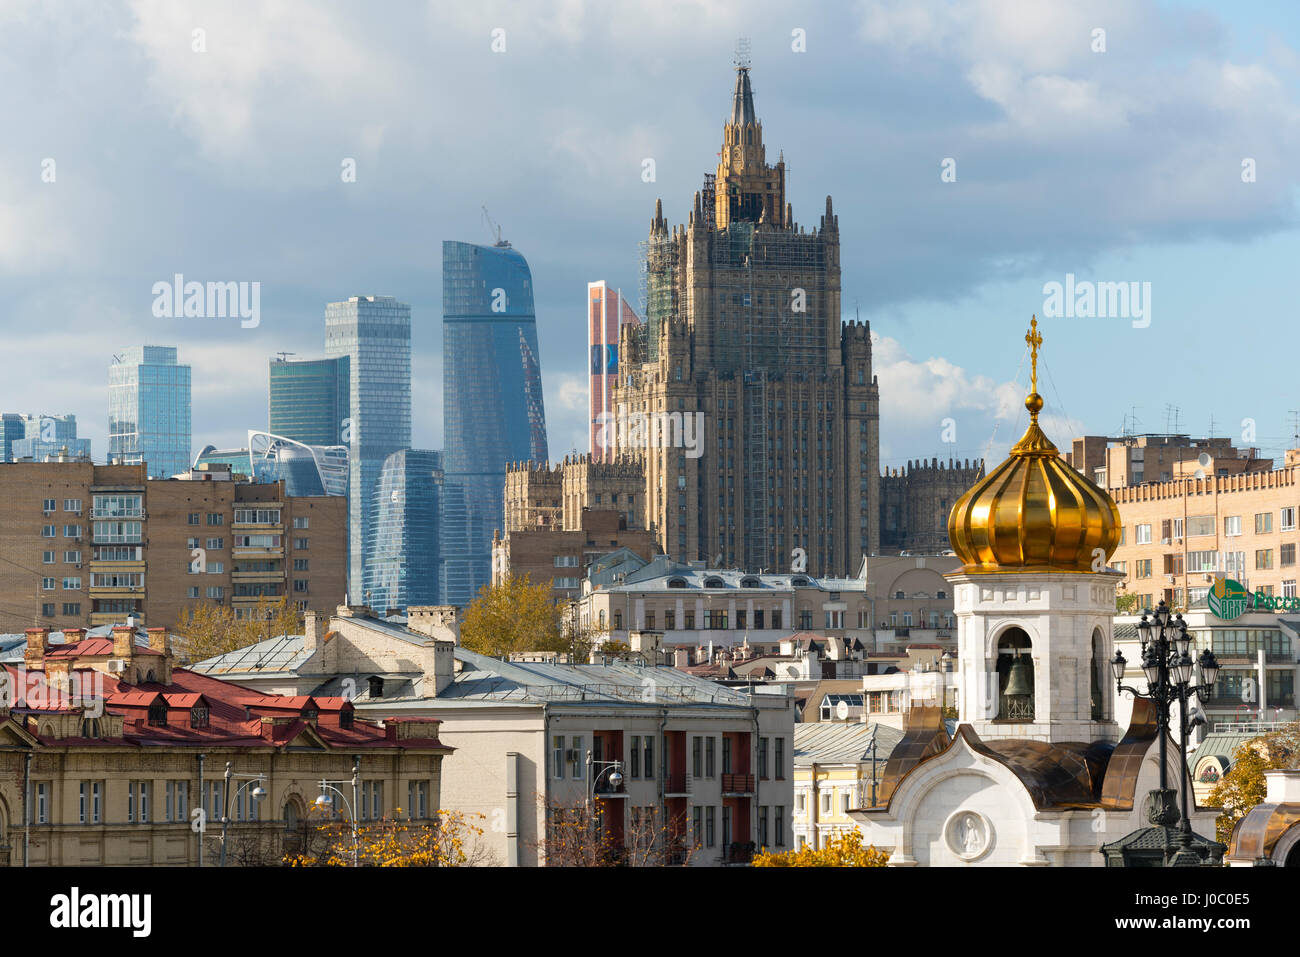 View of old and new skyscrapers, Moscow, Russia - Stock Image